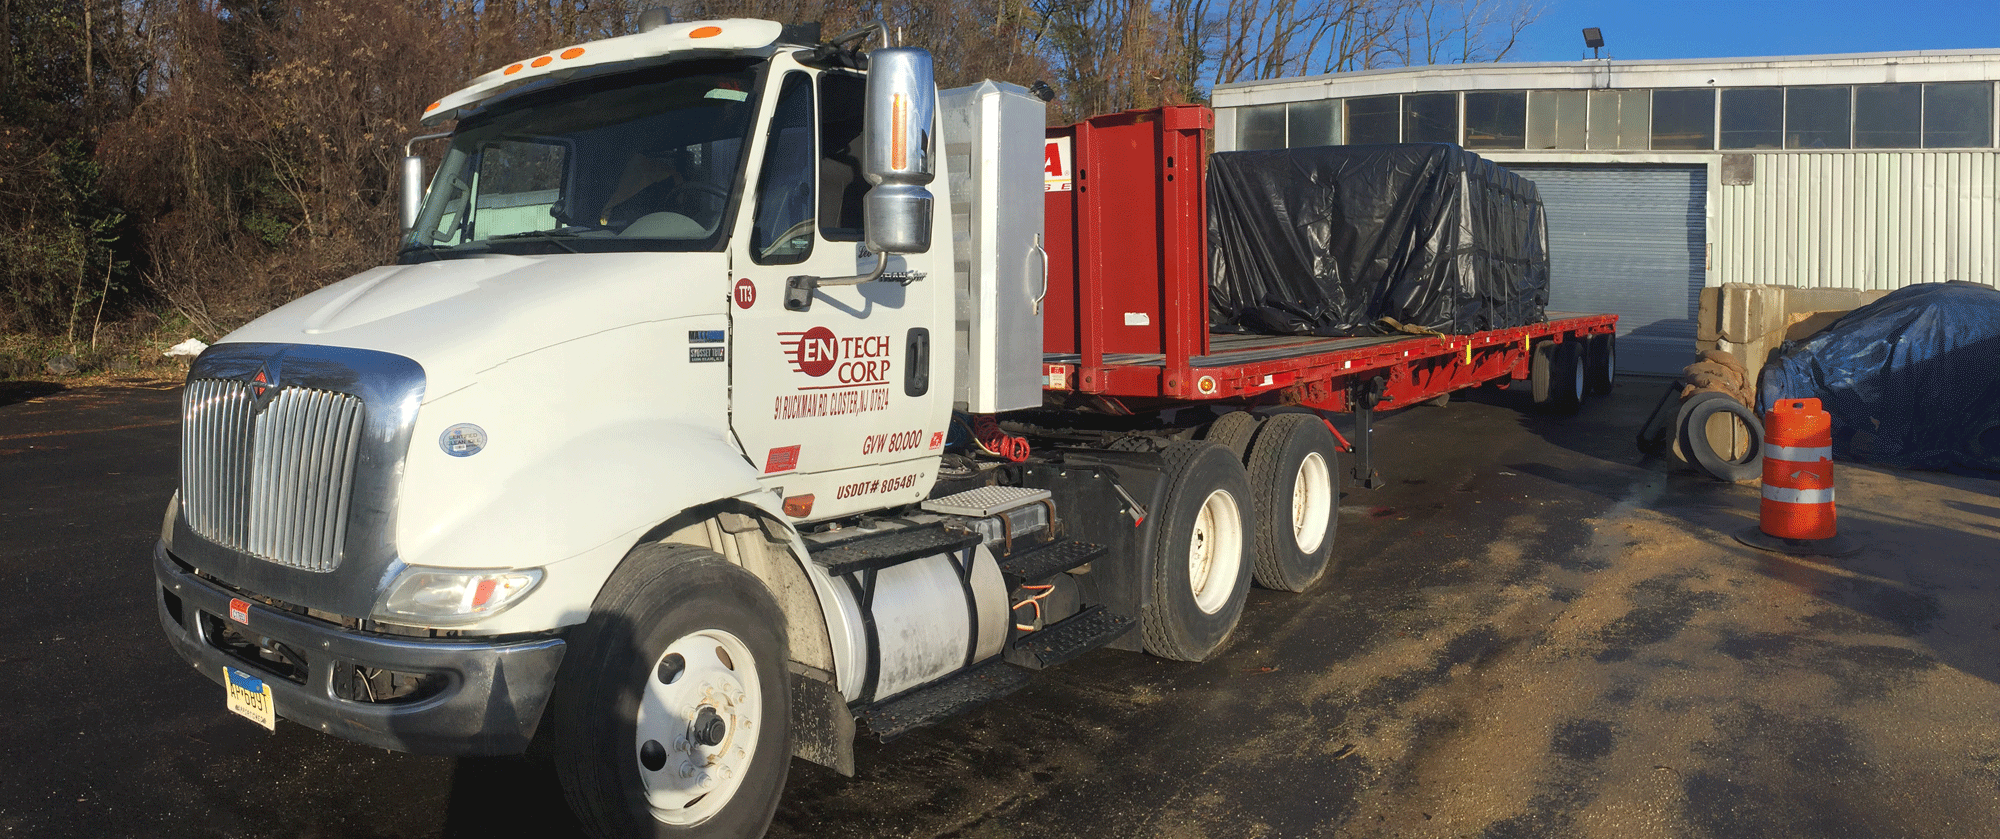 Large truck delivery